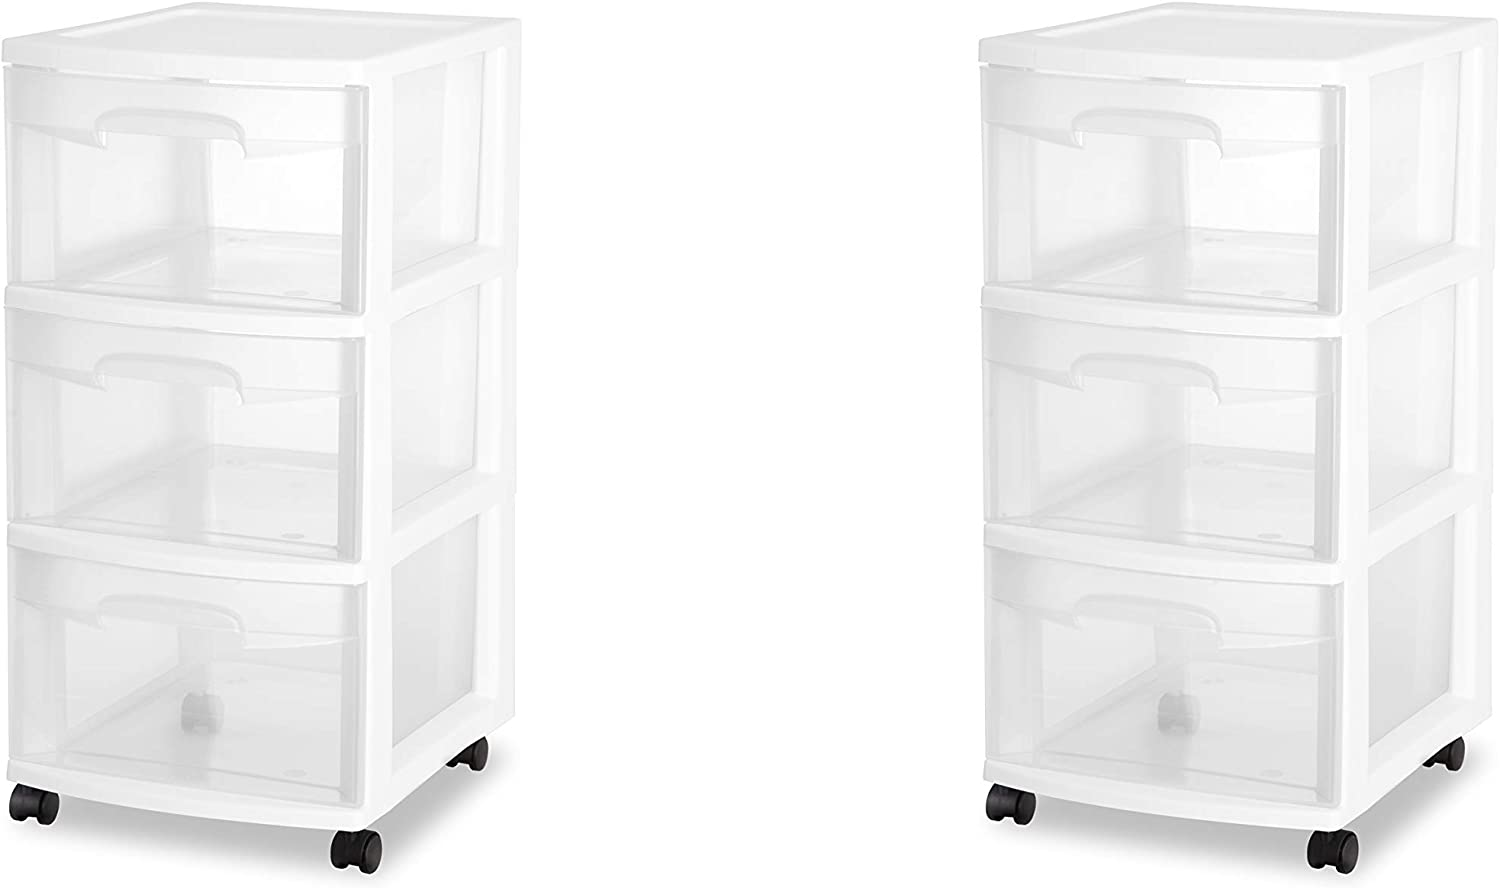 Sterilite 28308002 3 Drawer Cart, White Frame with Clear Drawers and Black Casters